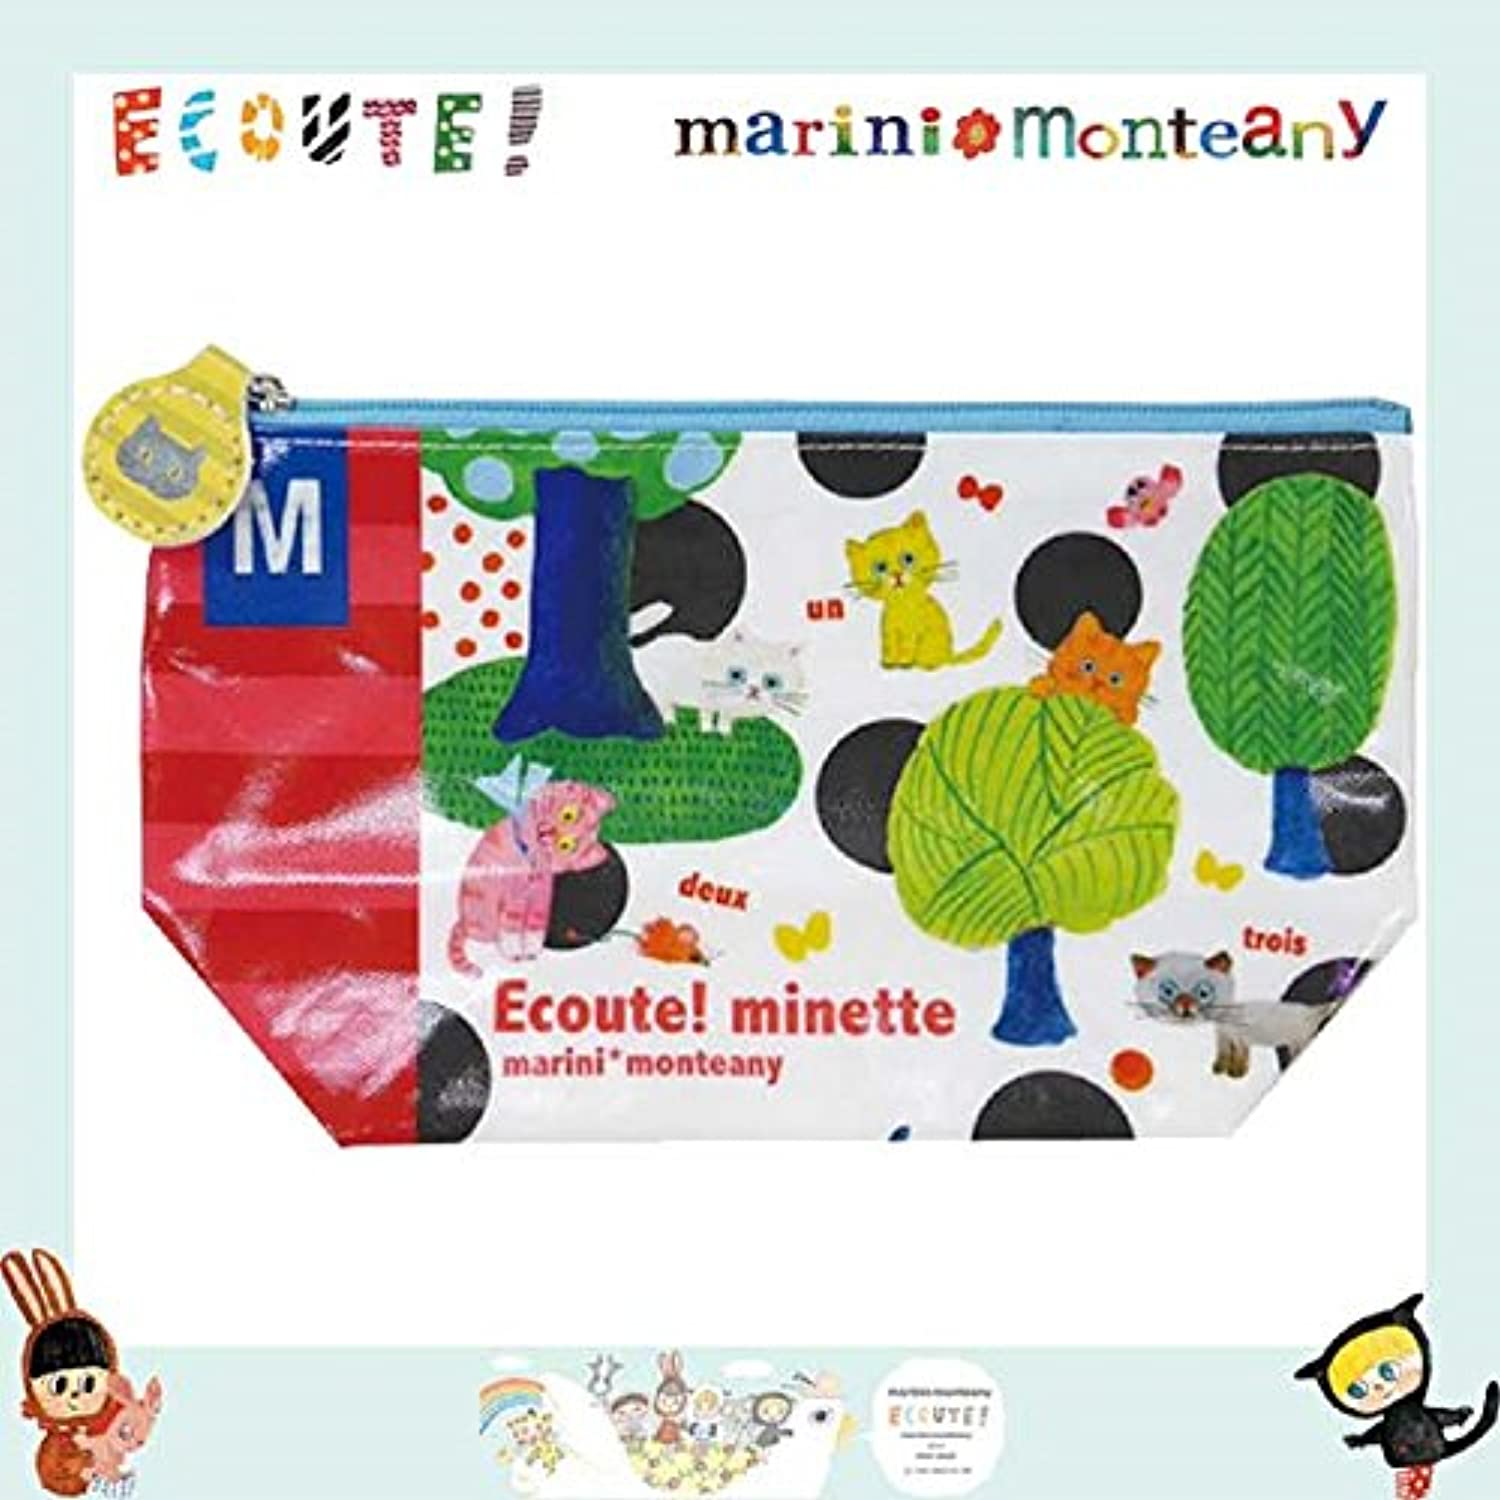 804690/ECOUTE!/E.minetteエクートミネットマチ付ポーチ「森」/モンスイユ/収納/袋物/バッグ/ケース/ギフト/プレゼント